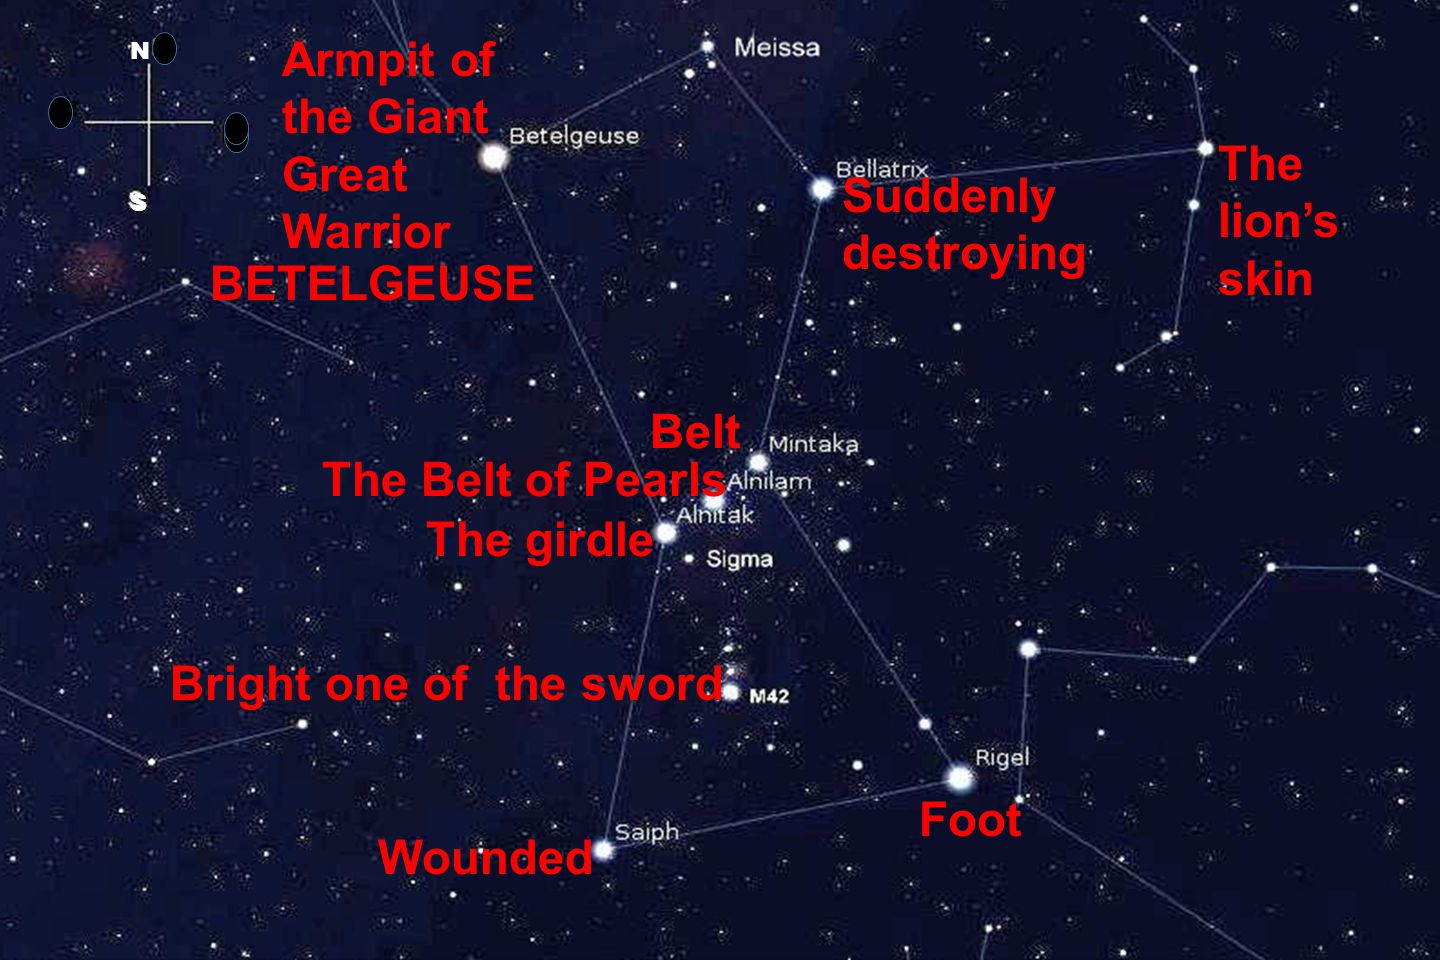 Belt Armpit of the Giant Great Warrior The Belt of Pearls The girdle Bright one of the sword Foot Suddenly destroying Wounded The lion's skin BETELGEUSE N S